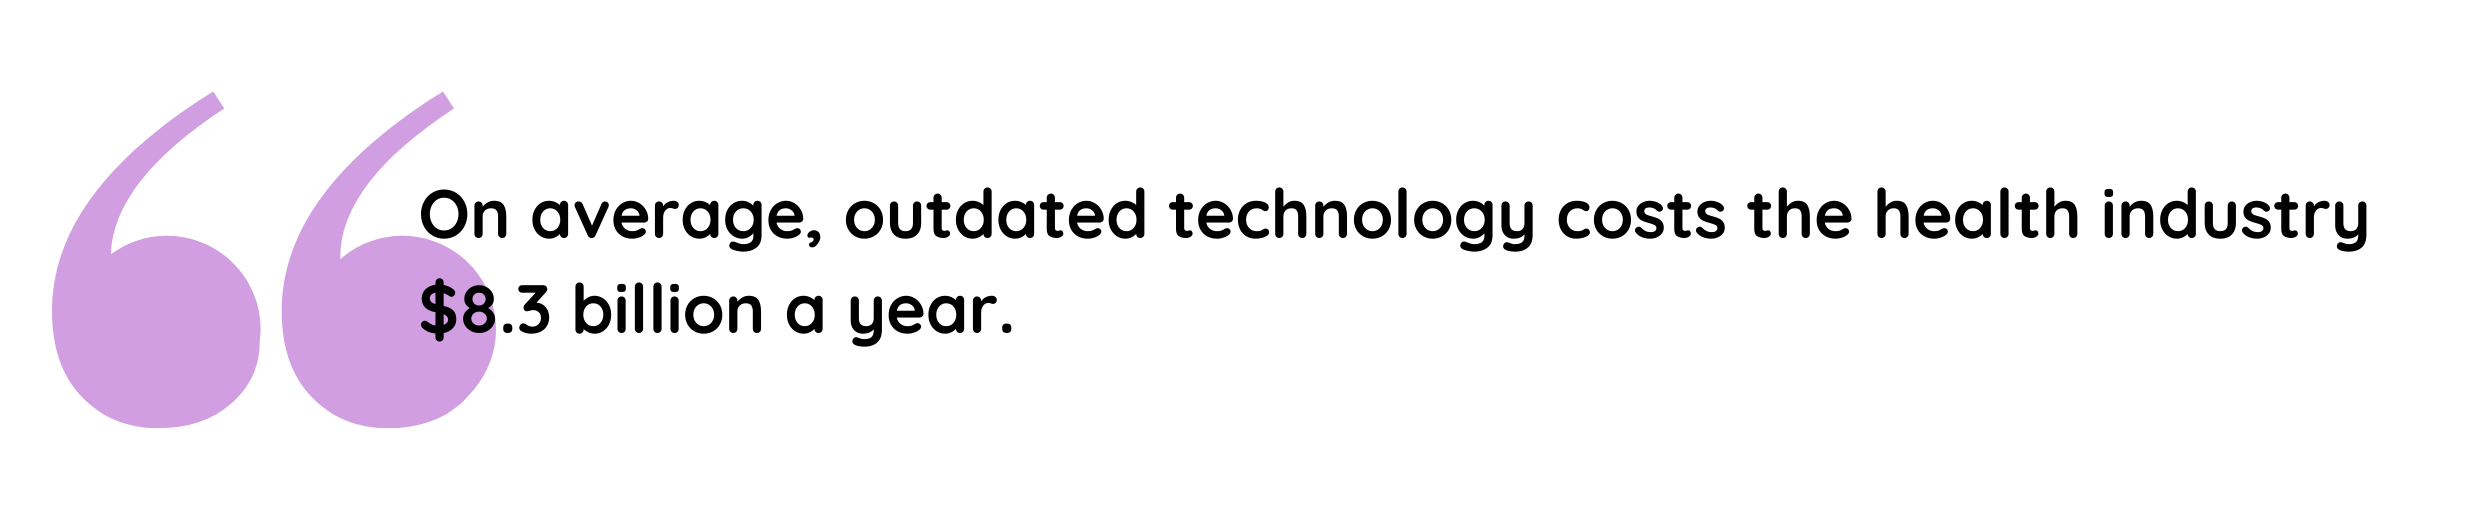 Outdated technology, on average, costs the health industry $8.3 billion a year.